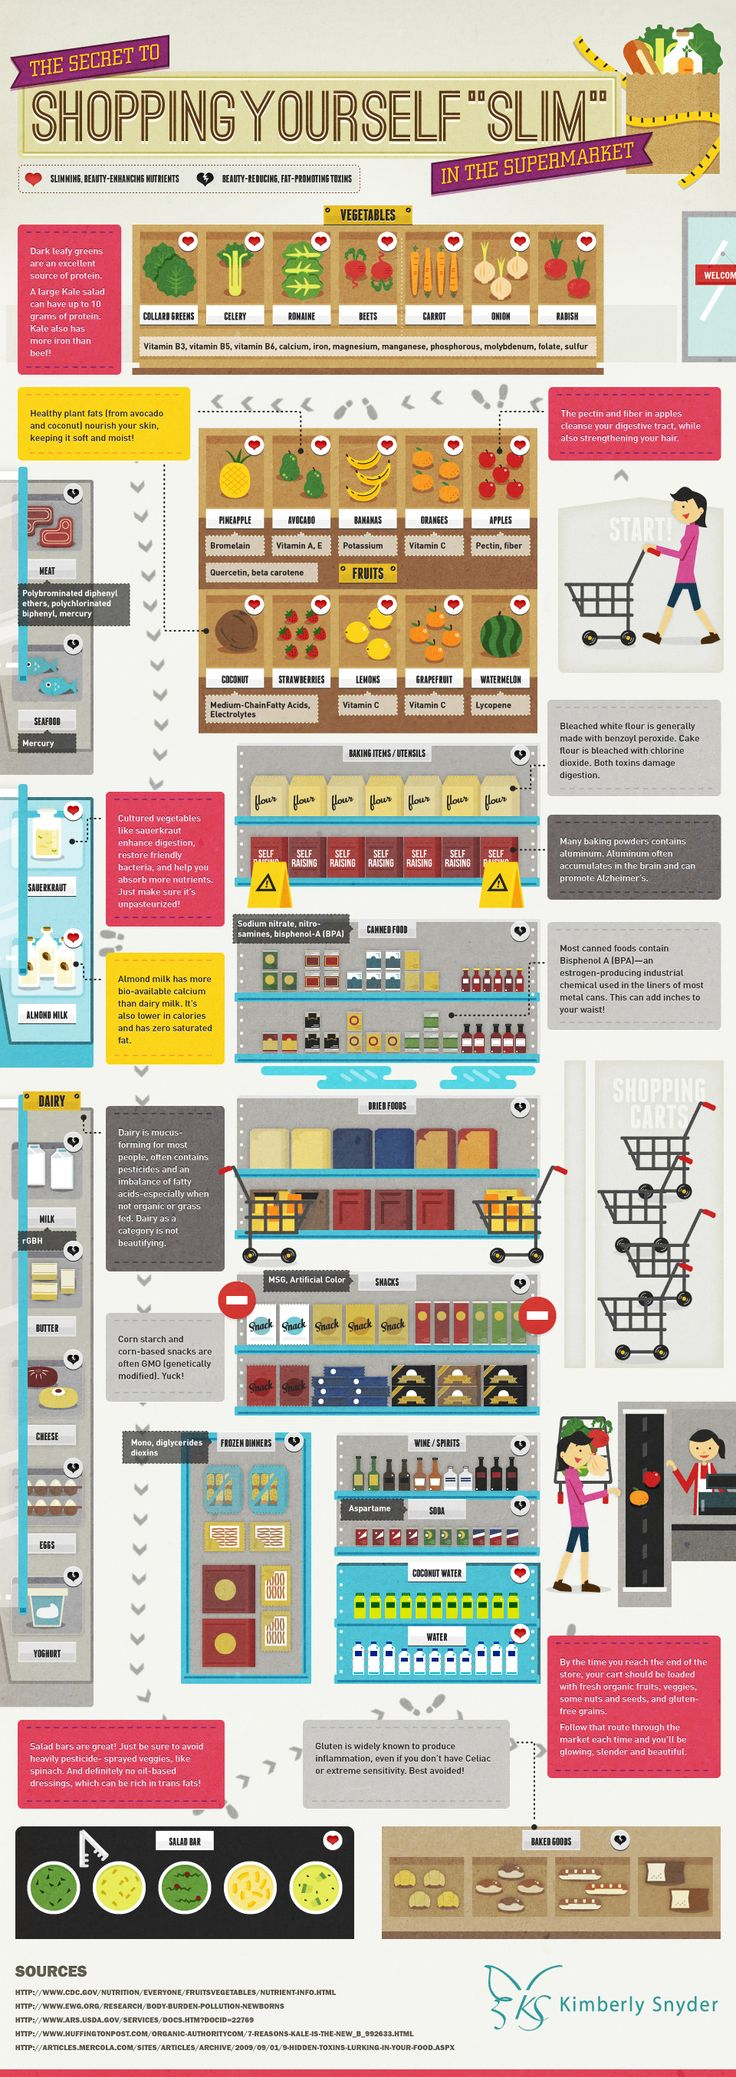 "Check out this new infographic I created with my team, which reveals how to ""Shop Yourself Slim"" whenever you take trips to the supermarket. It's extremely useful and I encourage you to 'pin' and share it with anyone who you know who may benefit!"